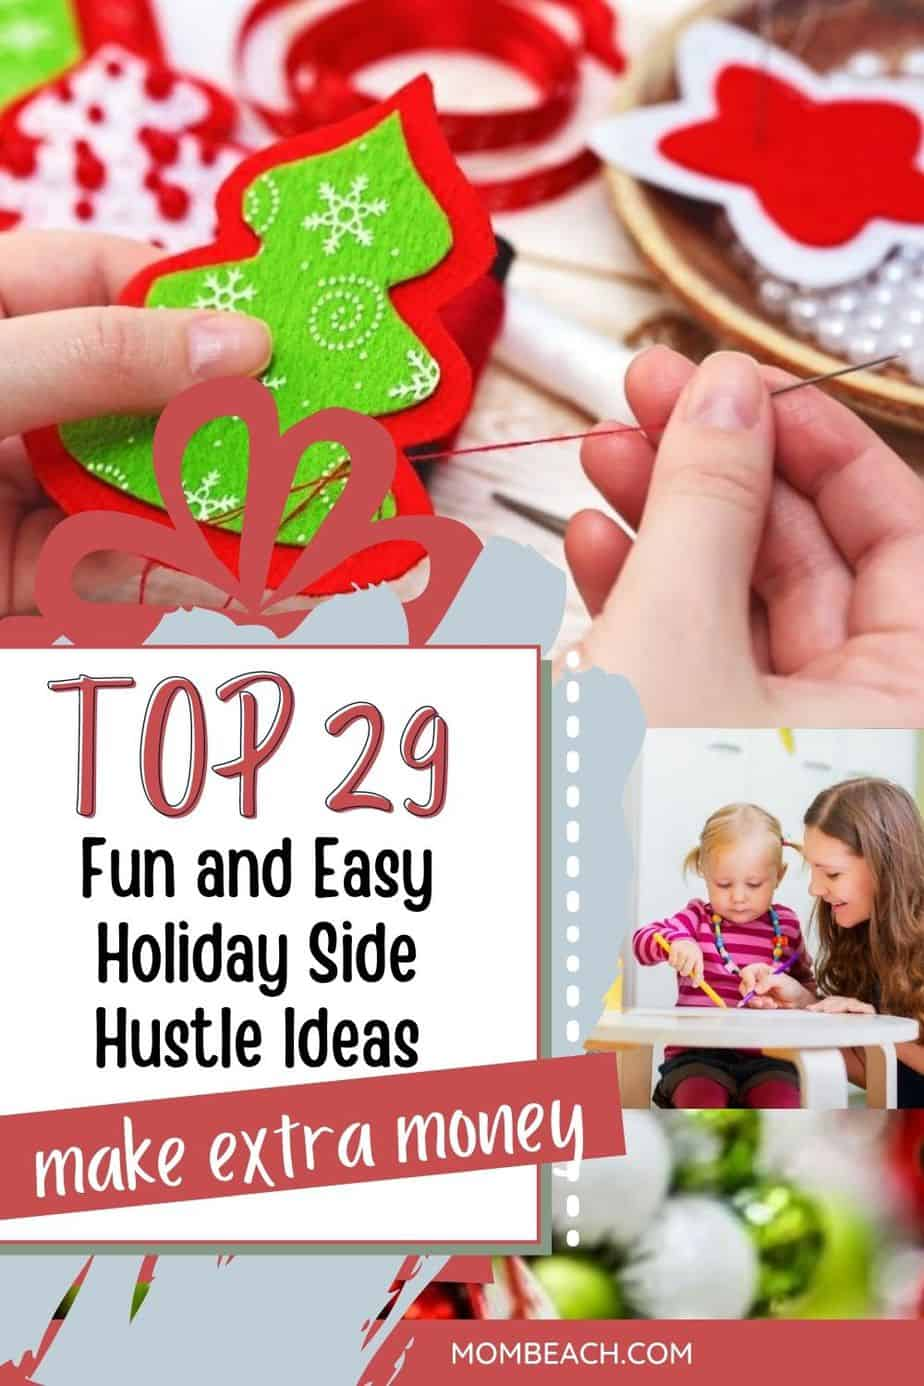 You won't believe how easy and fun it is to make extra money this holiday season with these 29 amazing side hustle ideas. You can avoid going into debt by doing a side hustle to make money. Get more money for Christmas gifts by doing a side hustle today!